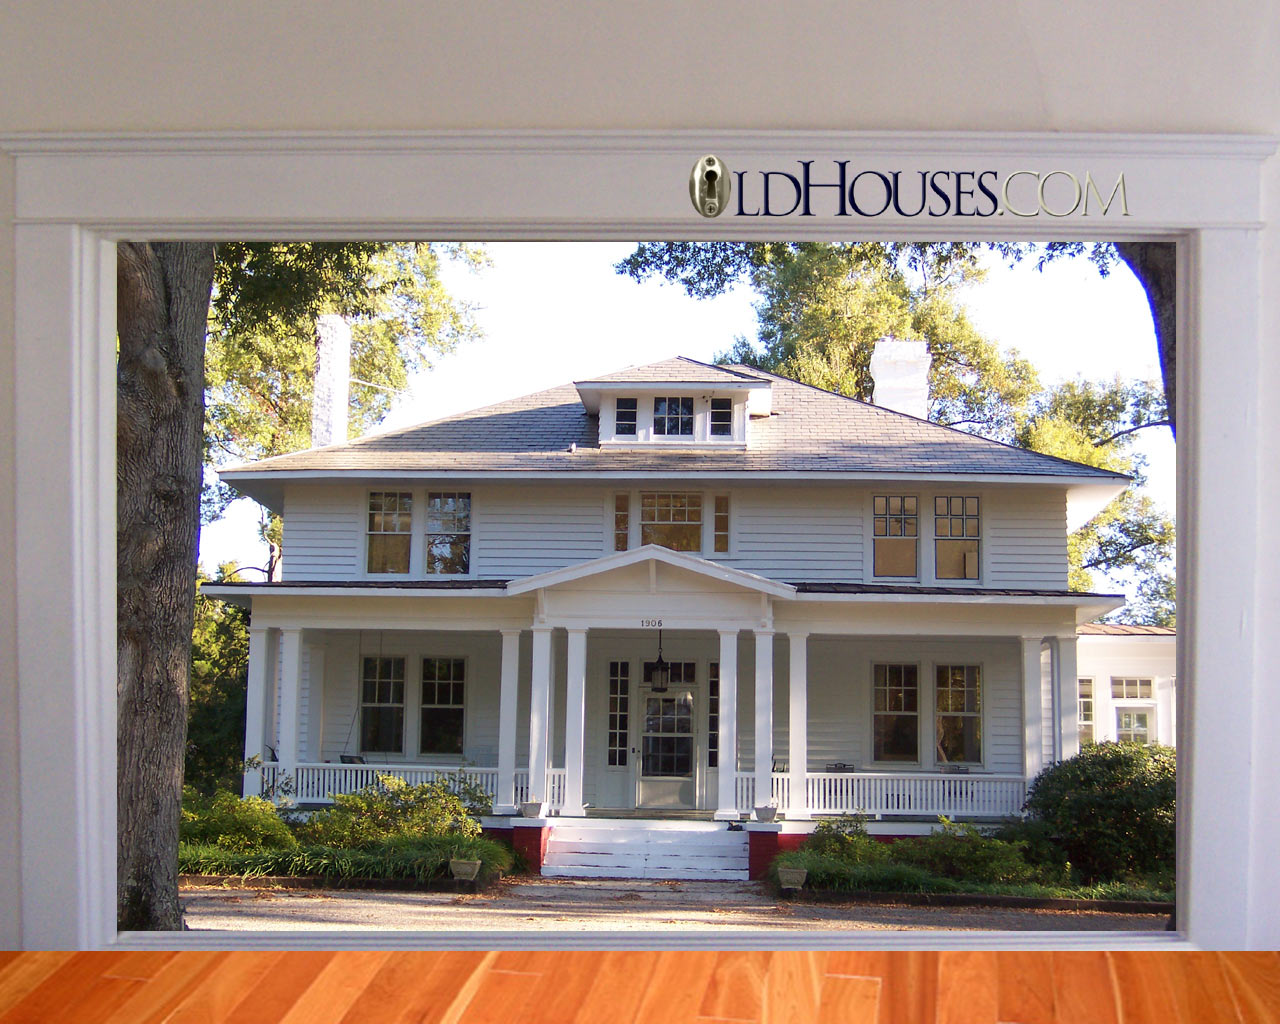 historic homes for sale old house archives resources faq about us 1280x1024